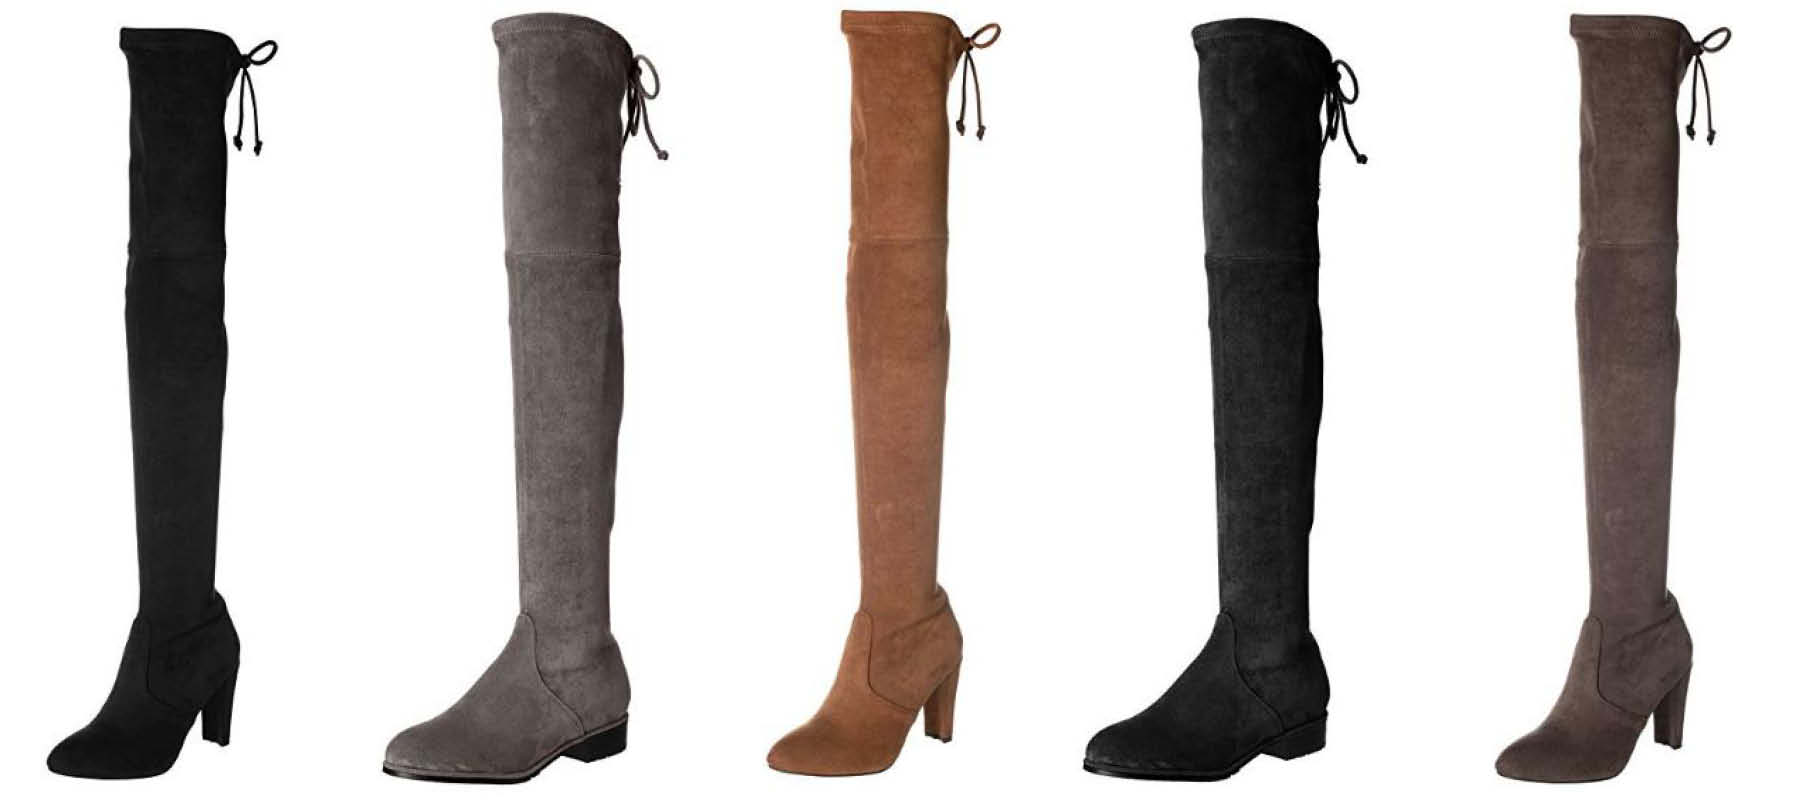 d6099730d Stuart Weitzman Lowland Boots Or Lookalike On The Hunt. Stuart Weitzman  Over The Knee Boot Dupes Kaitlyn Pan Target